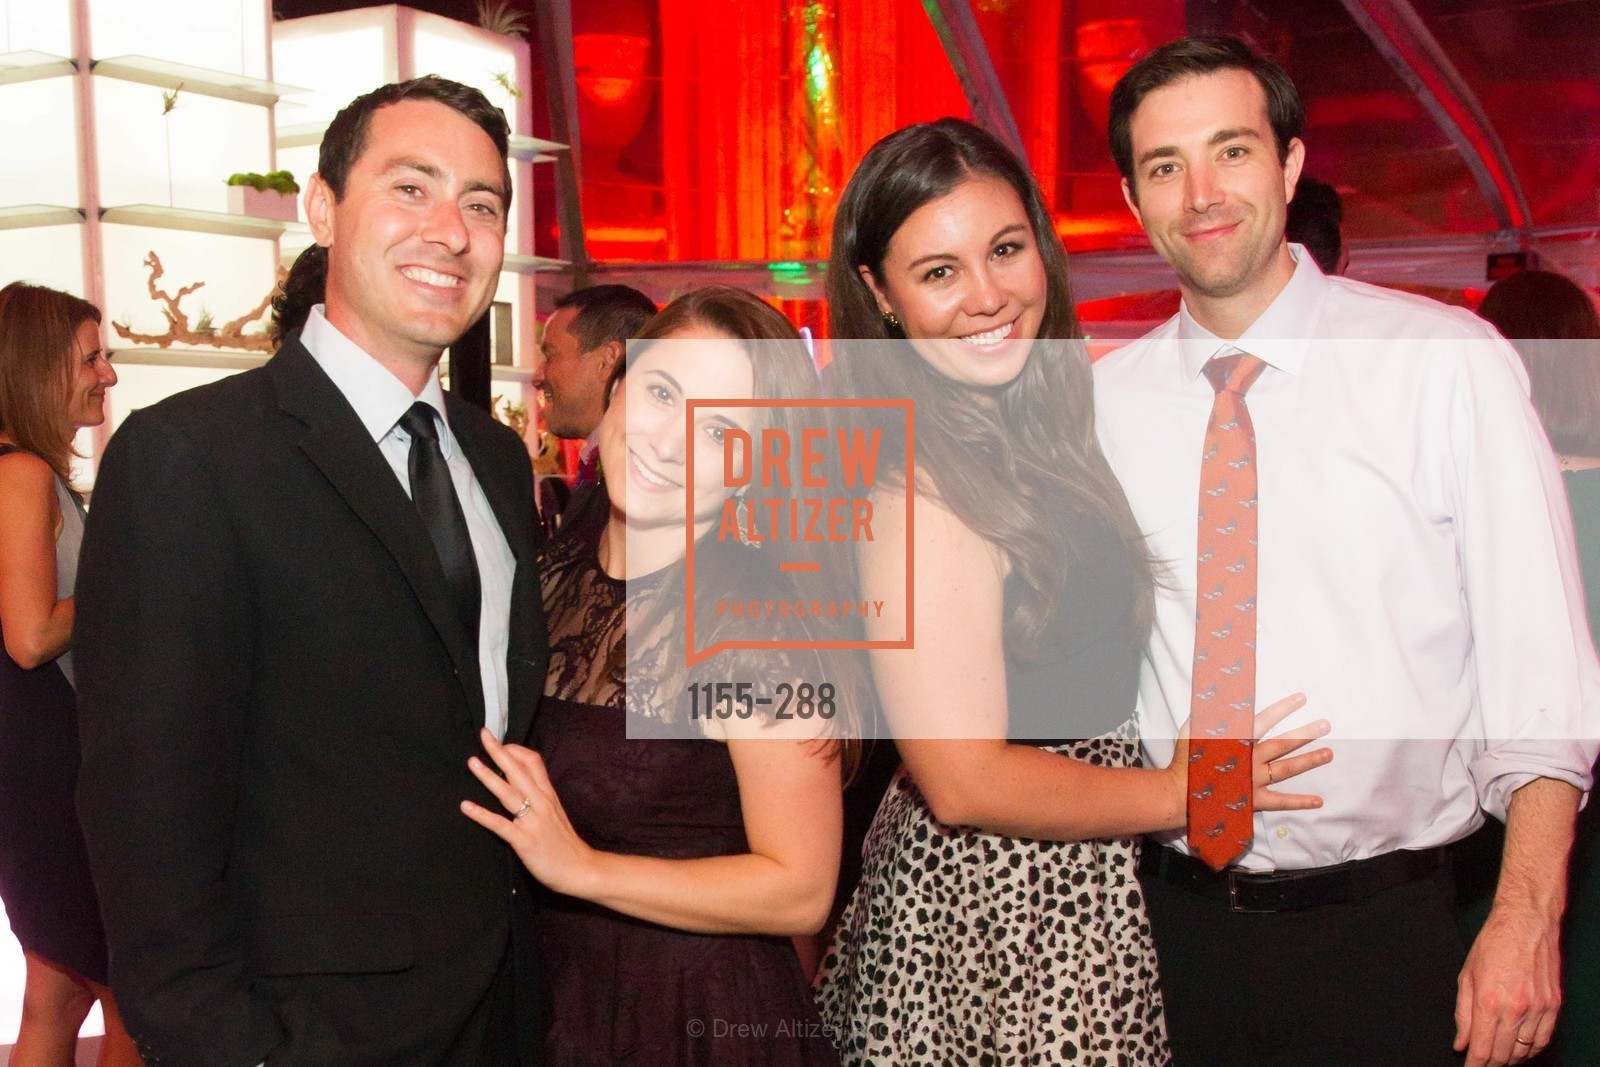 Chris Robertson, Caitlin Crisan, Stephen Crisan, Party for the Parks 2015, Palace of Fine Arts. 3301 Lyon St, September 19th, 2015,Drew Altizer, Drew Altizer Photography, full-service event agency, private events, San Francisco photographer, photographer California